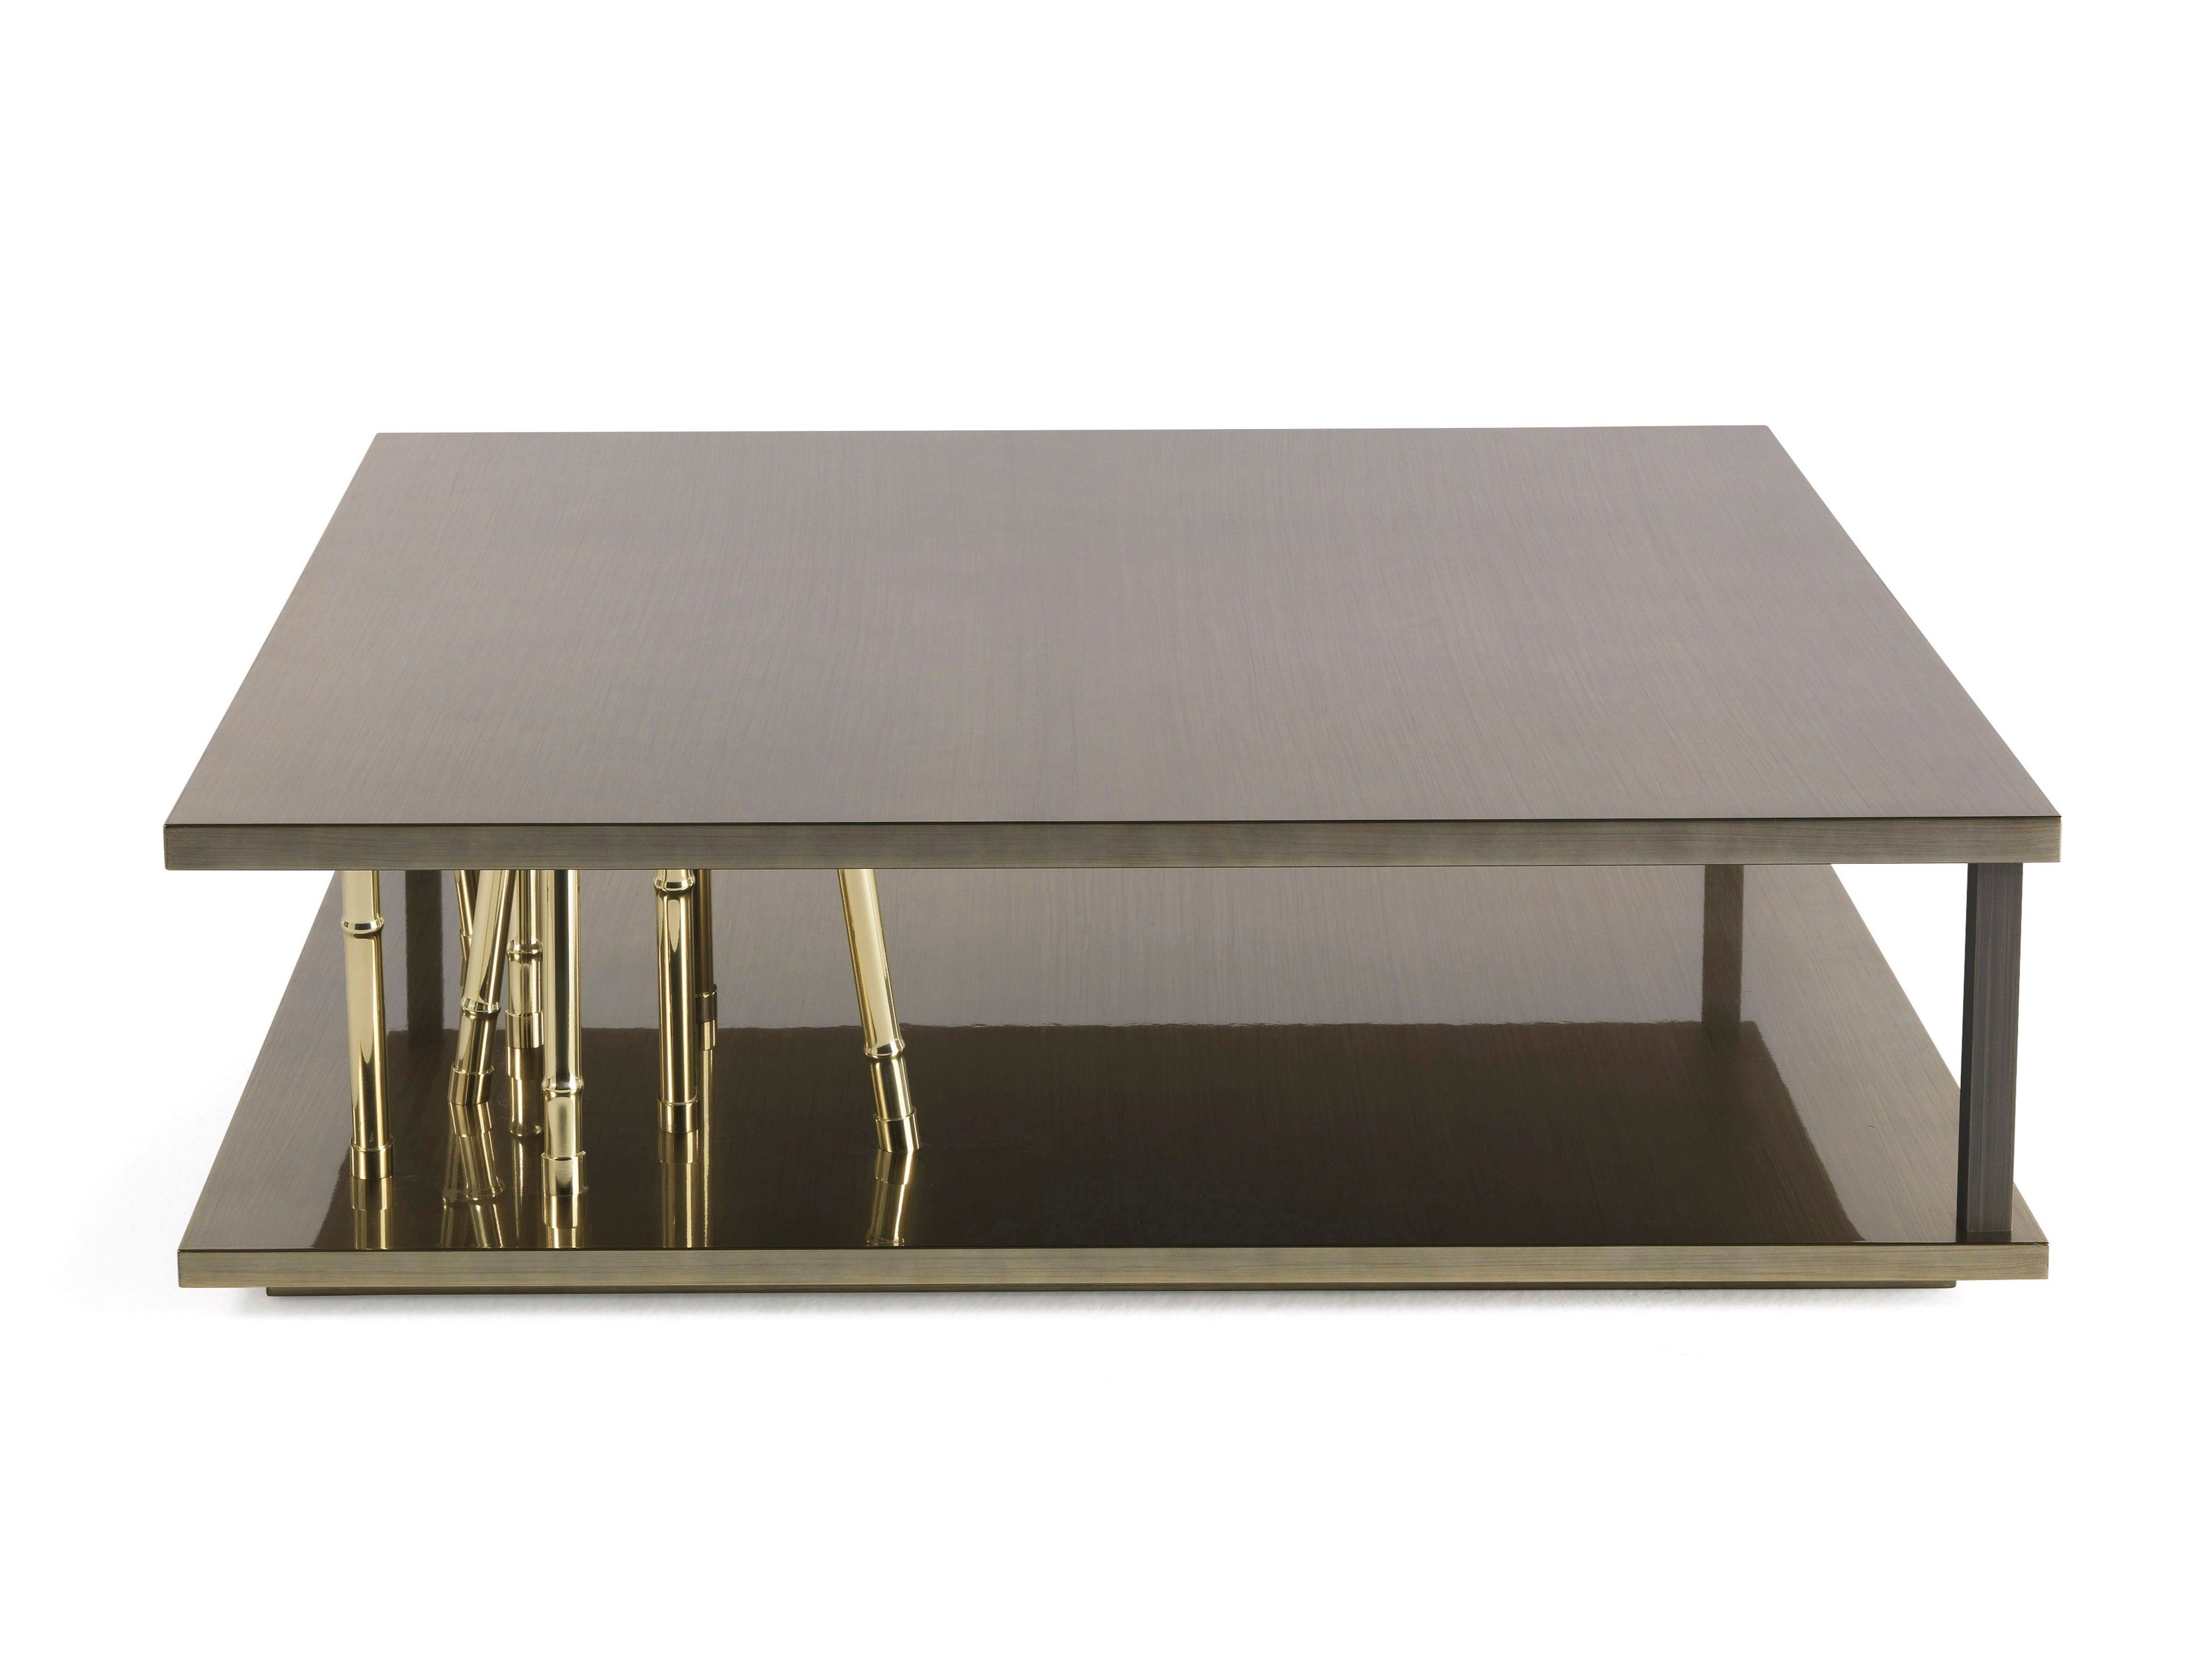 Taxila Low Coffee Table Taxila Collection By Etro Home Interiors Coffee Table Low Coffee Table House Interior [ 2725 x 3630 Pixel ]